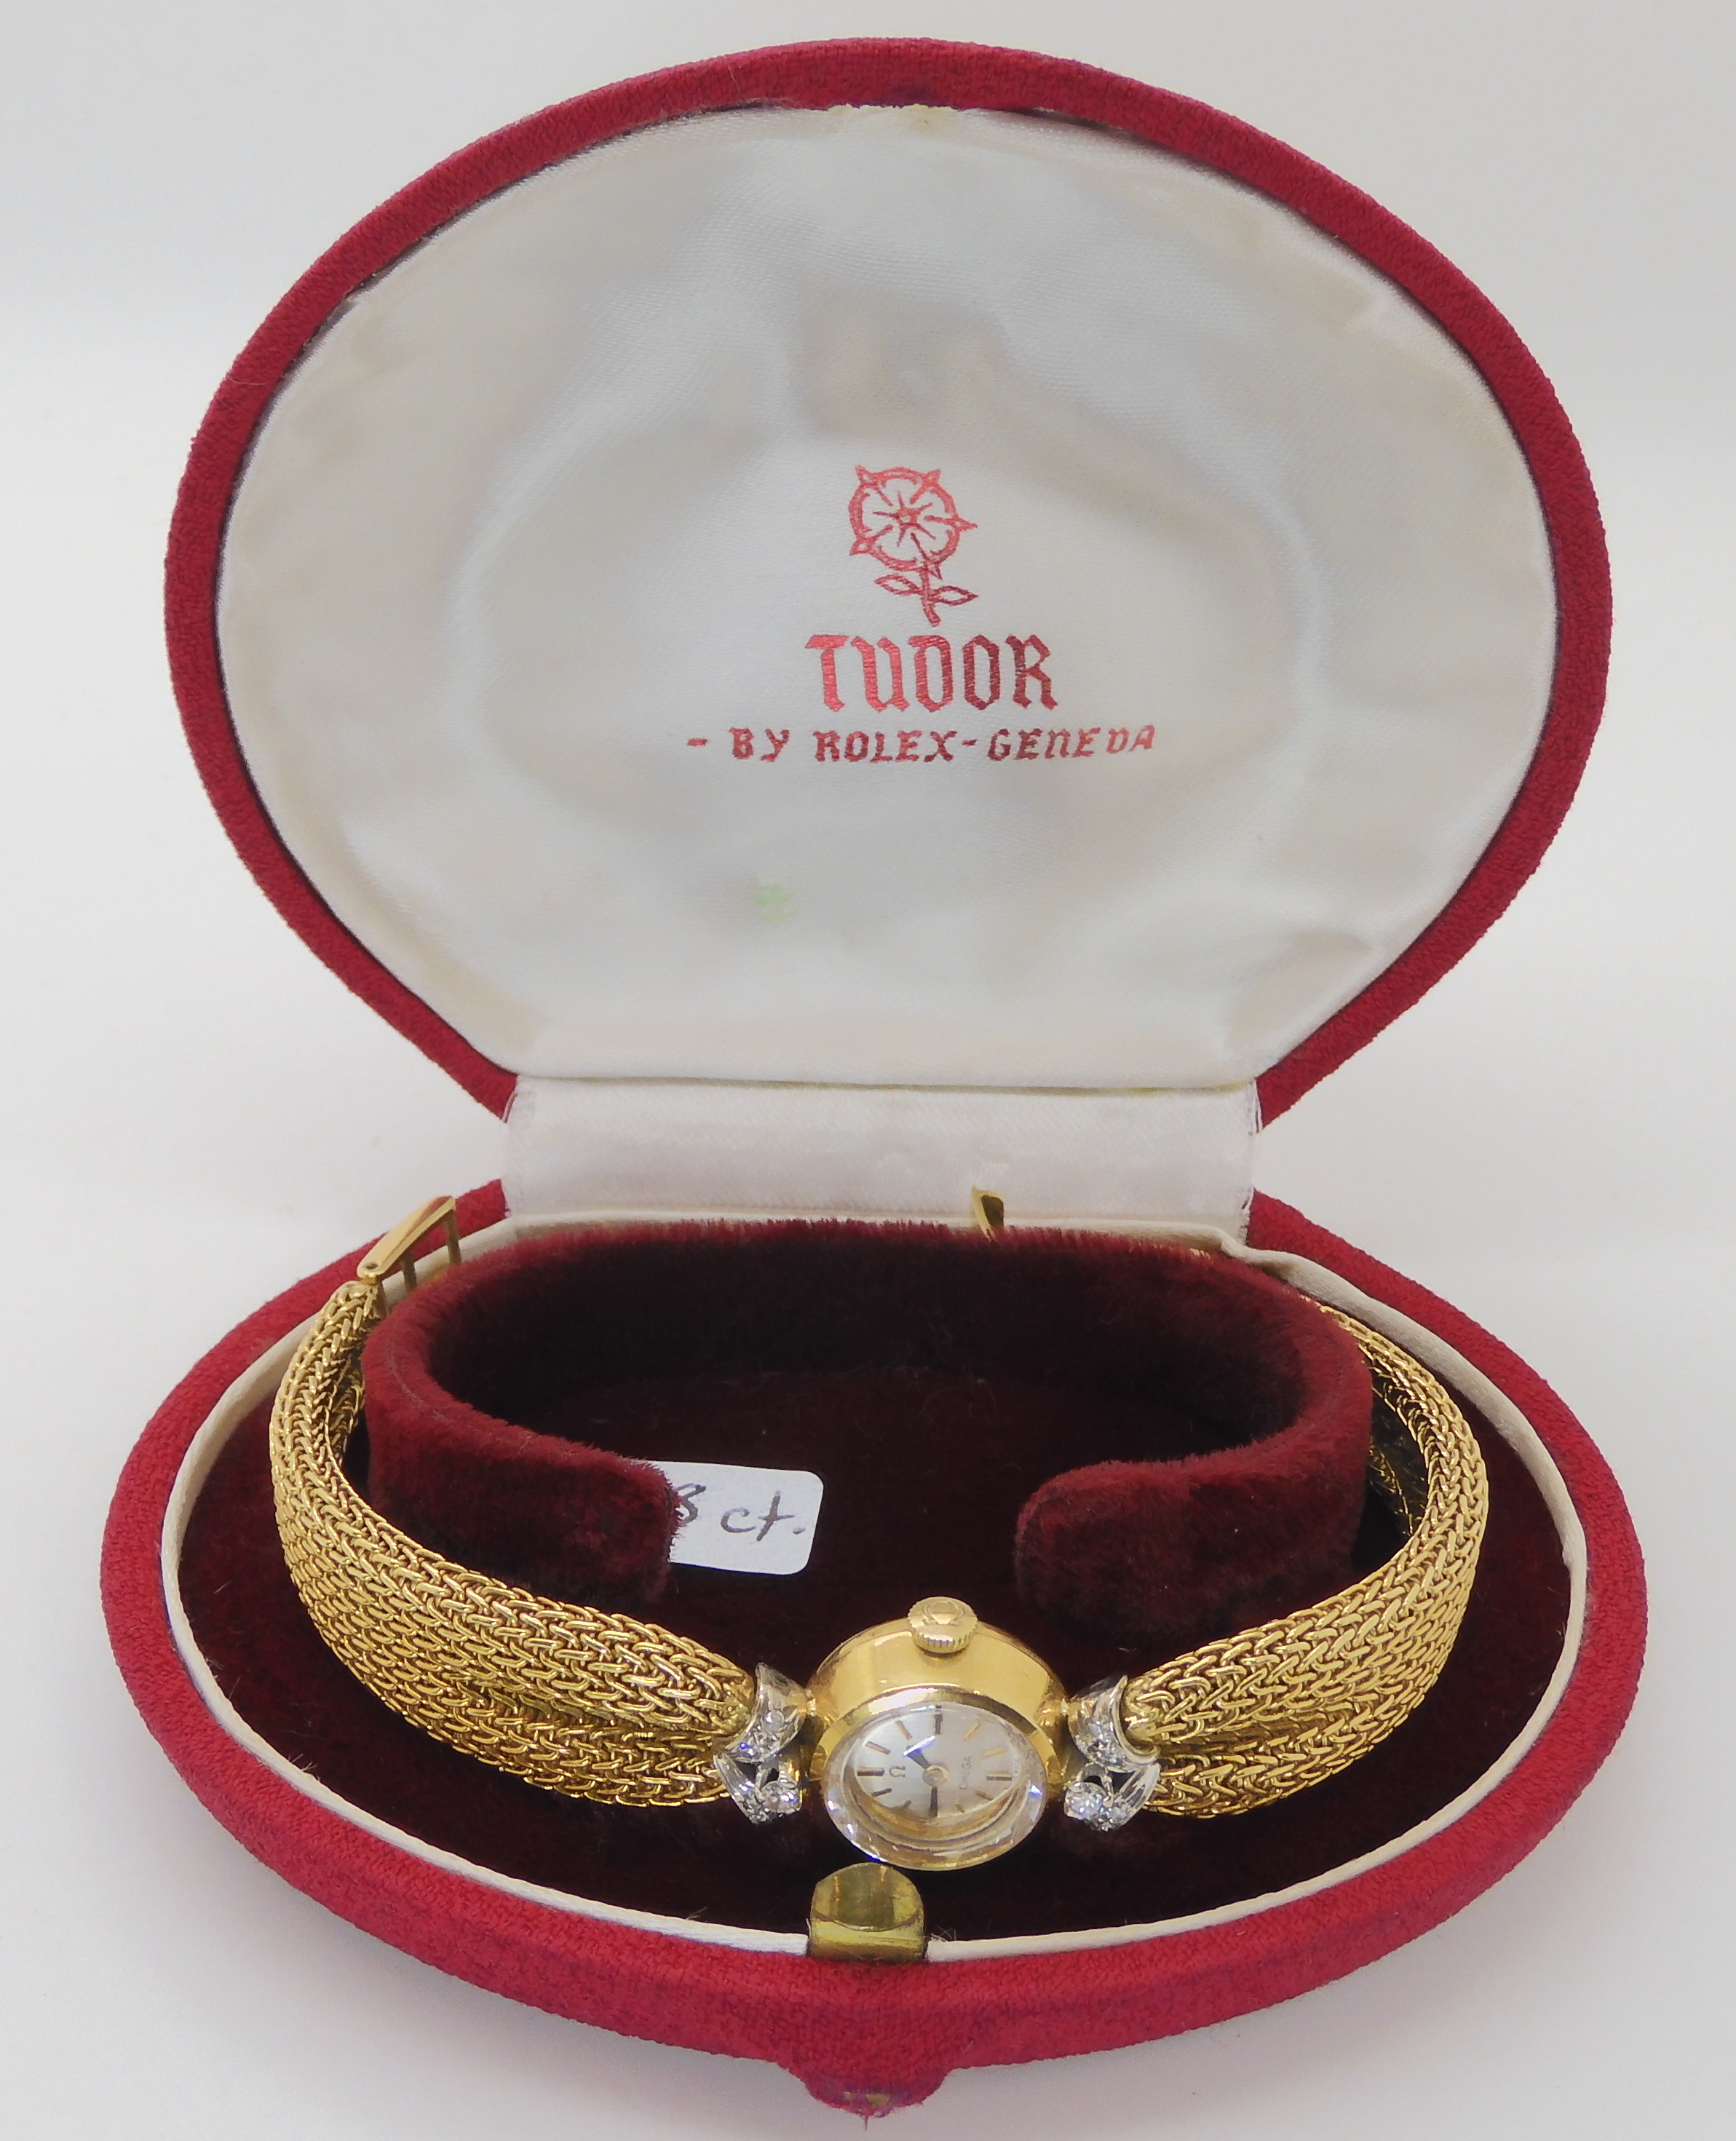 A LADIES 18CT GOLD OMEGA WITH DIAMONDS AND DECORATIVE STRAP the woven mesh strap in puckered to look - Image 2 of 5